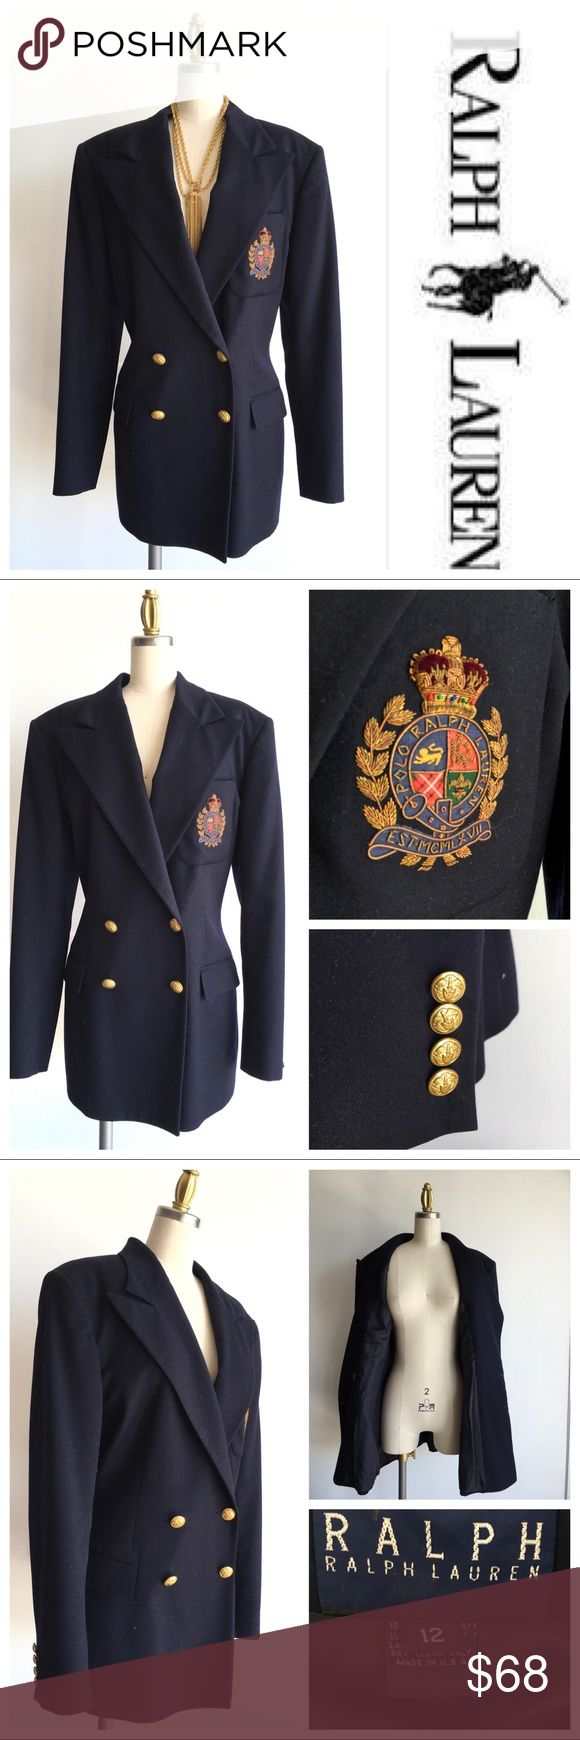 New Listing! Ralph Lauren Navy Crest Blazer Classic Ralph Lauren Navy Blue Wool Double Breasted  Signature Emblem Blazer. Gold signature buttons. Fully Lined. A great quality  classic to add to your wardrobe! Measurements available upon request. Bundle & Save $. Ask me for a custom bundle quote. Ralph Lauren Jackets & Coats Blazers